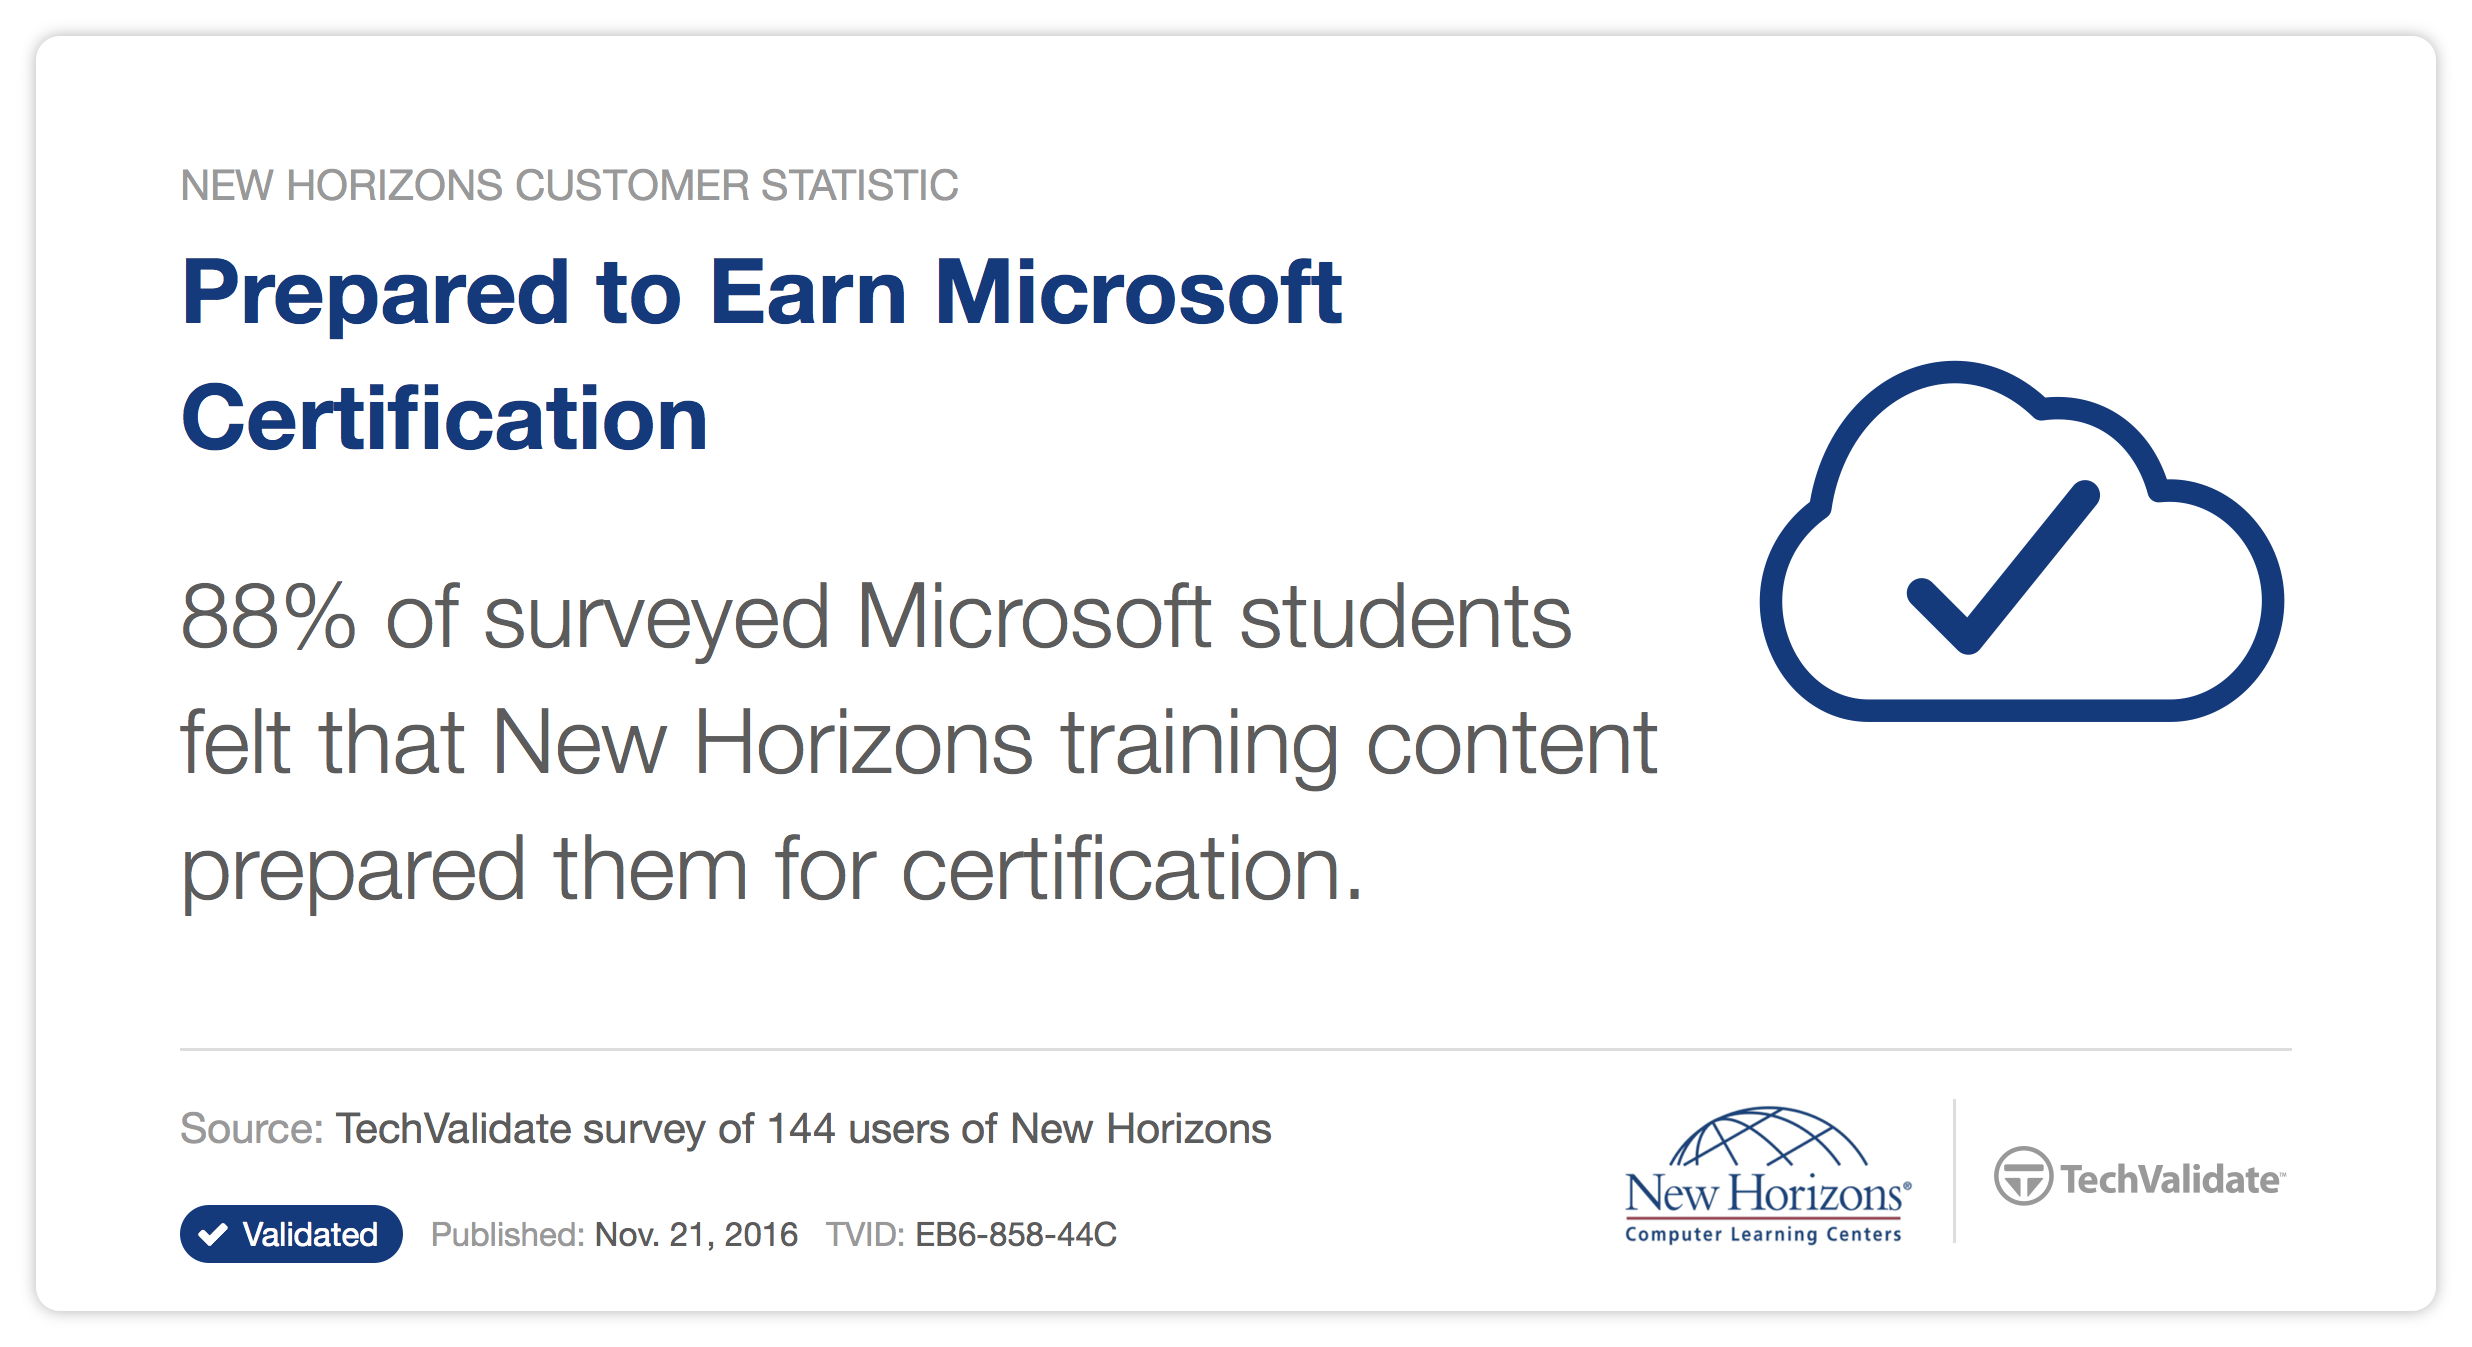 New Horizons Prepared To Earn Microsoft Certification